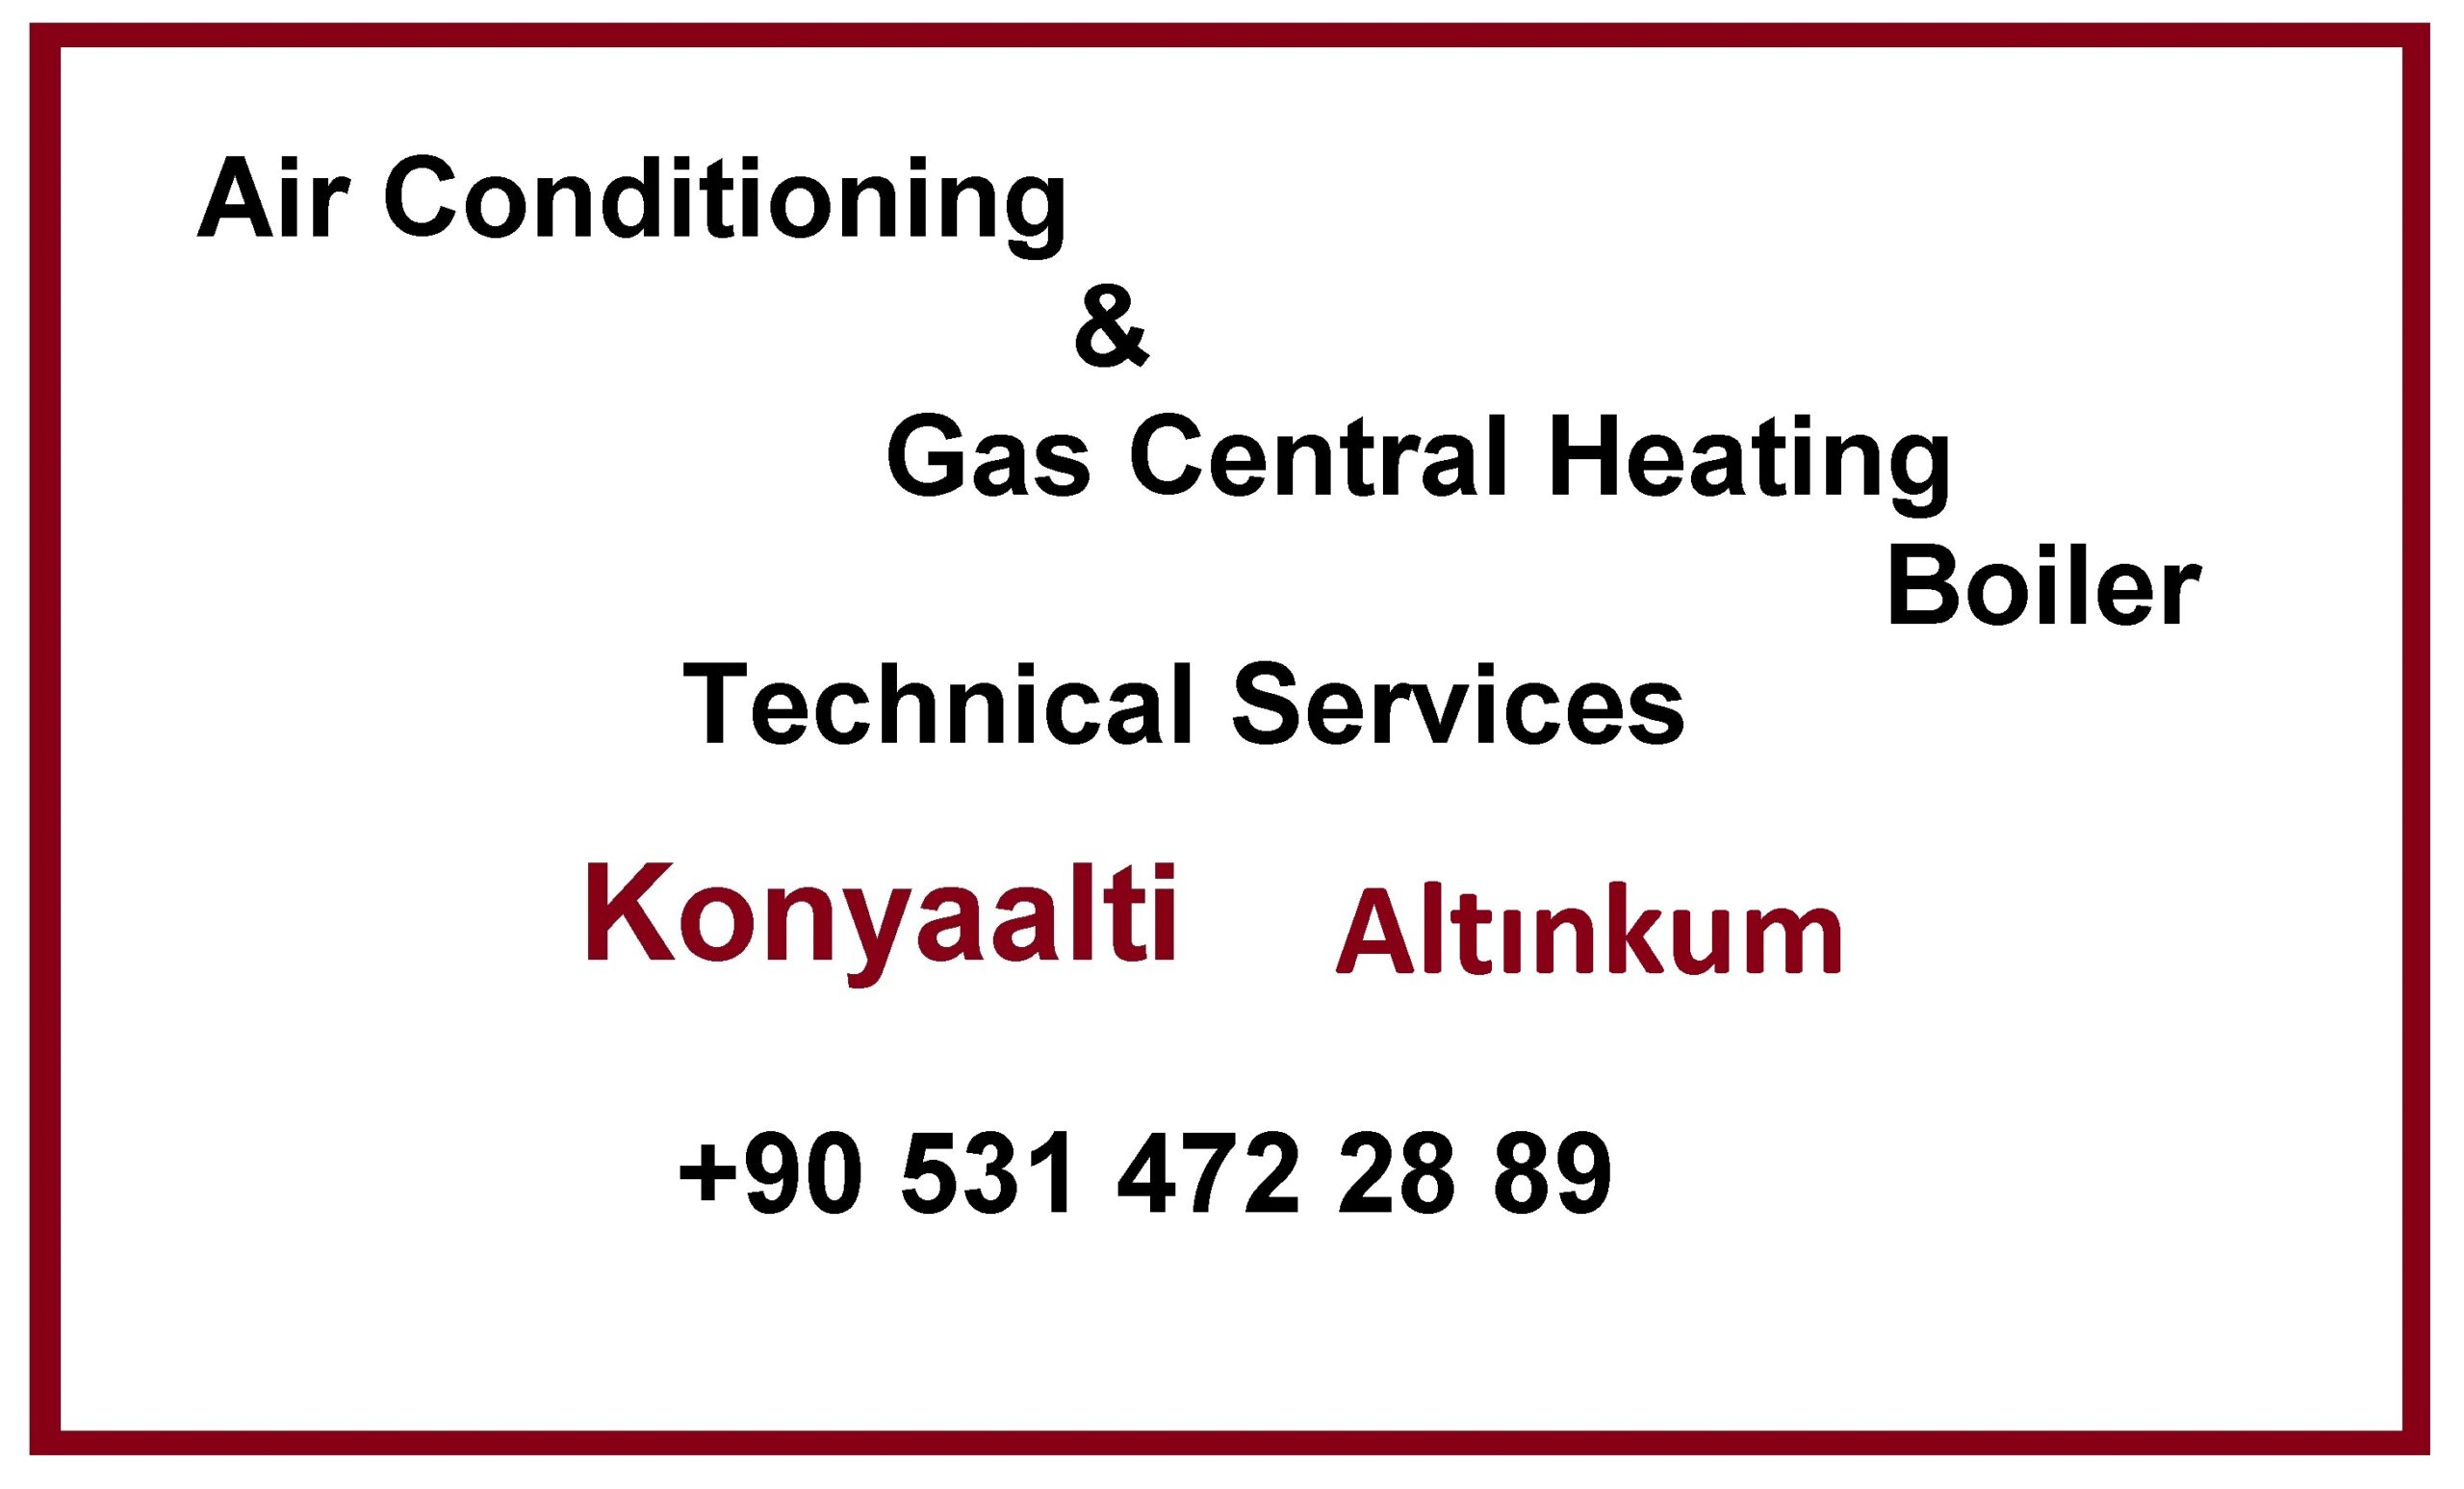 Air Conditioning, Gas Central Heating TS in Altınkum